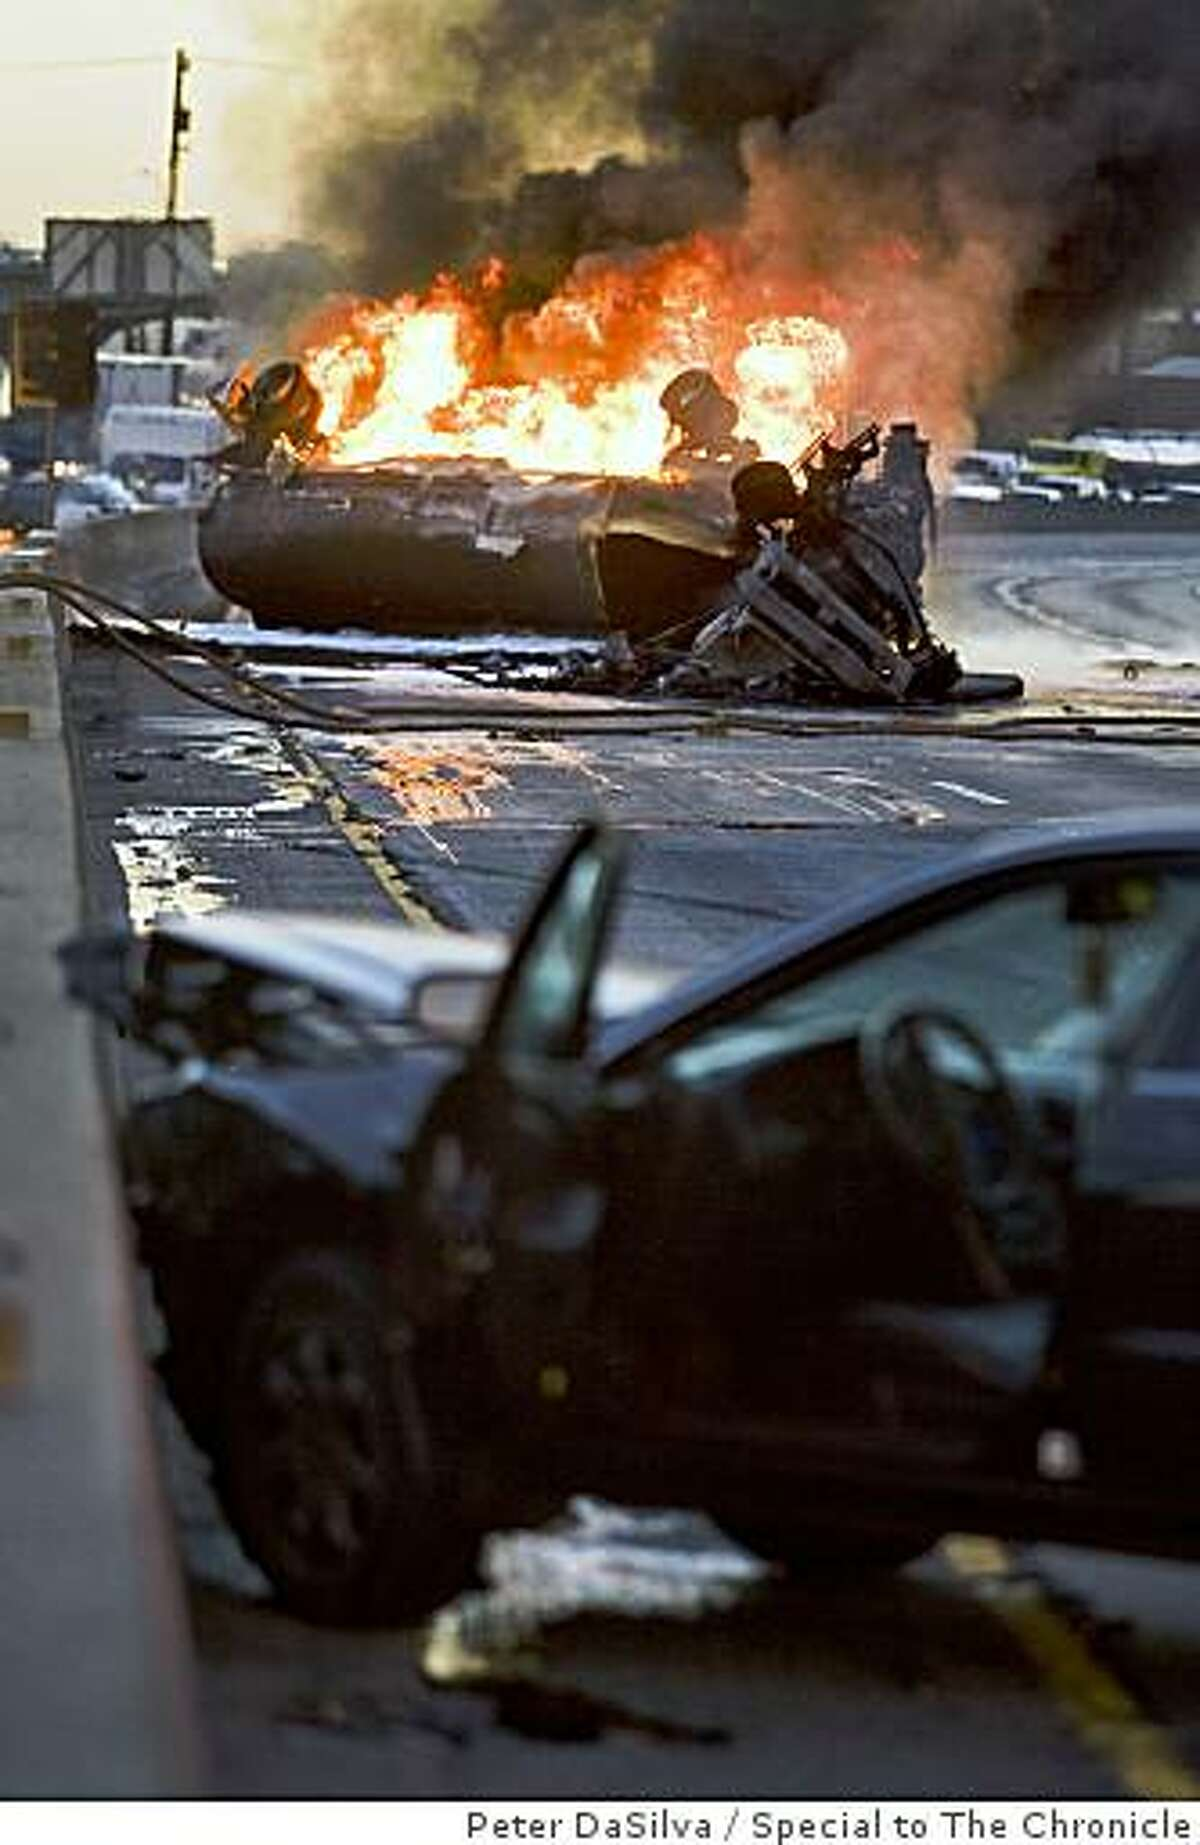 The wreck of a black sedan involved in the over turned tanker truck burning out of control sits along south bound HWY 880 in Oakland California, Oct. 22, 2008.